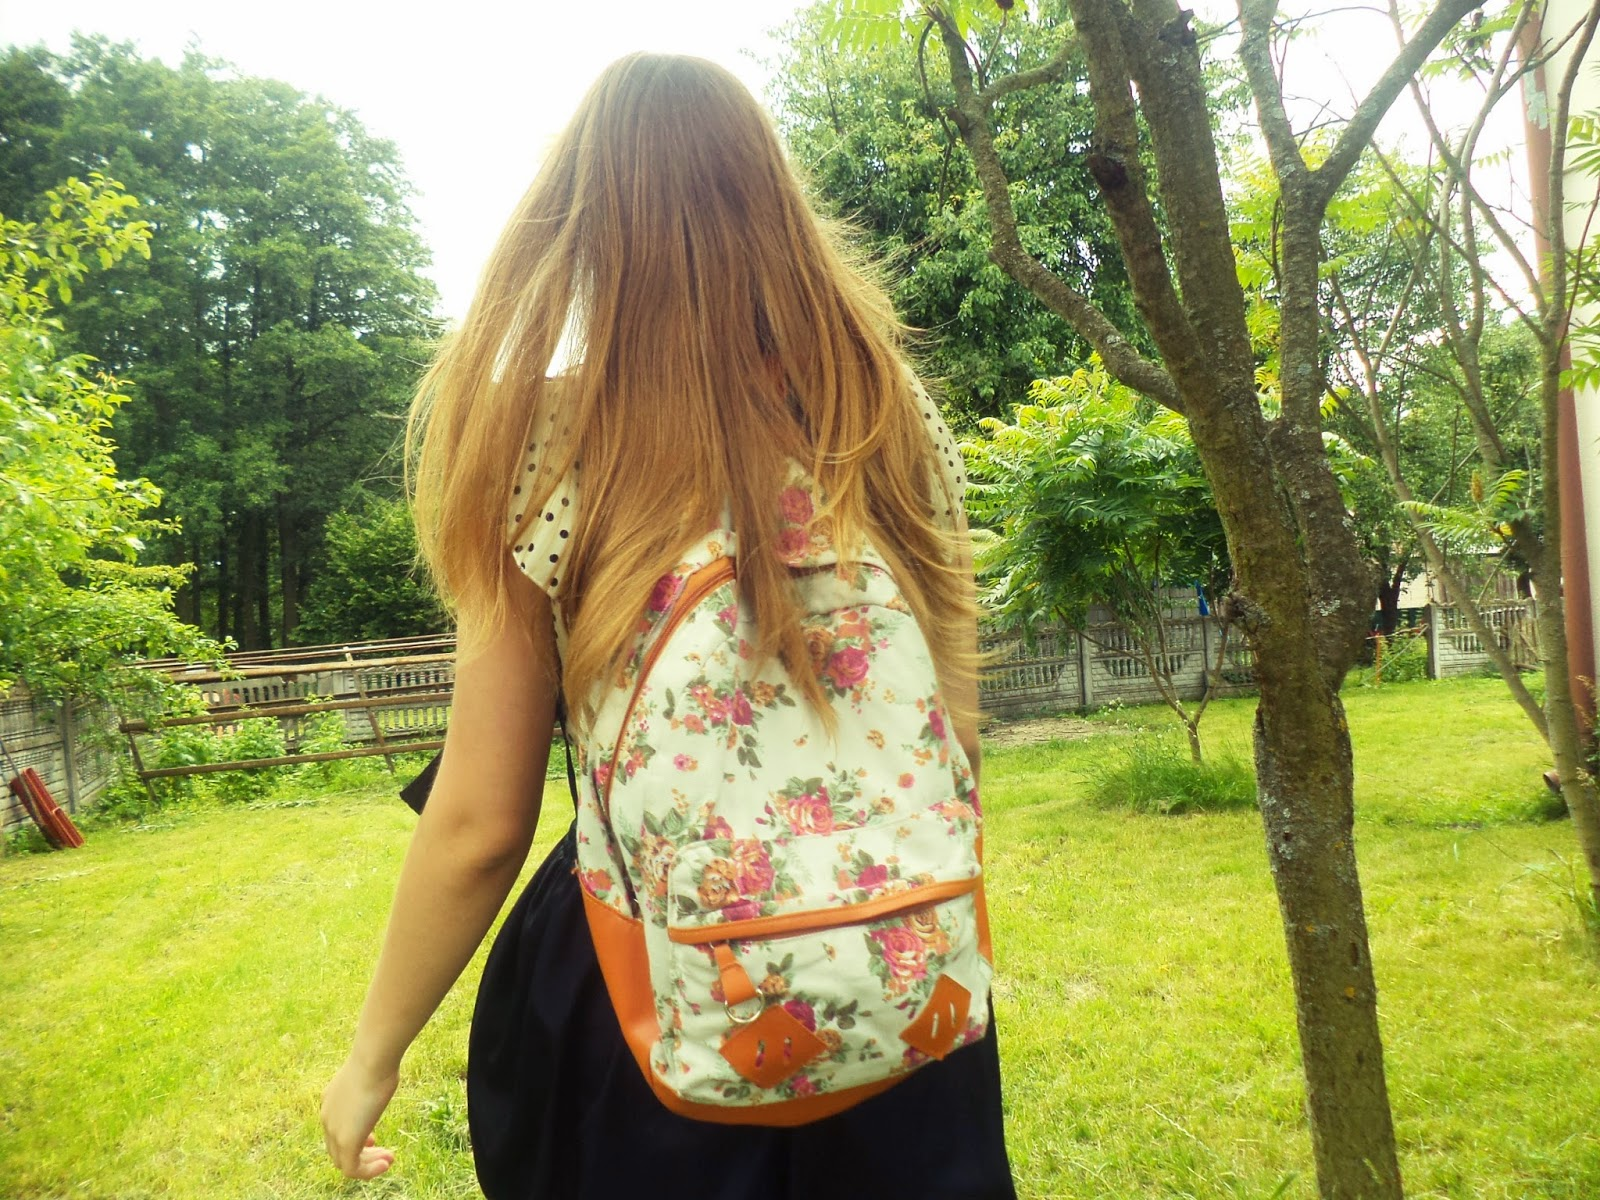 http://www.banggood.com/Wholesale-New-Women-Girl-Vintage-Cute-Flower-Schoolbag-Bookbags-Backpack-Black-Bag-p-53474.html?utm_source=fashionblogs&utm_medium=blog_review&utm_campaign=KarolinaBierc&utm_content=Judy